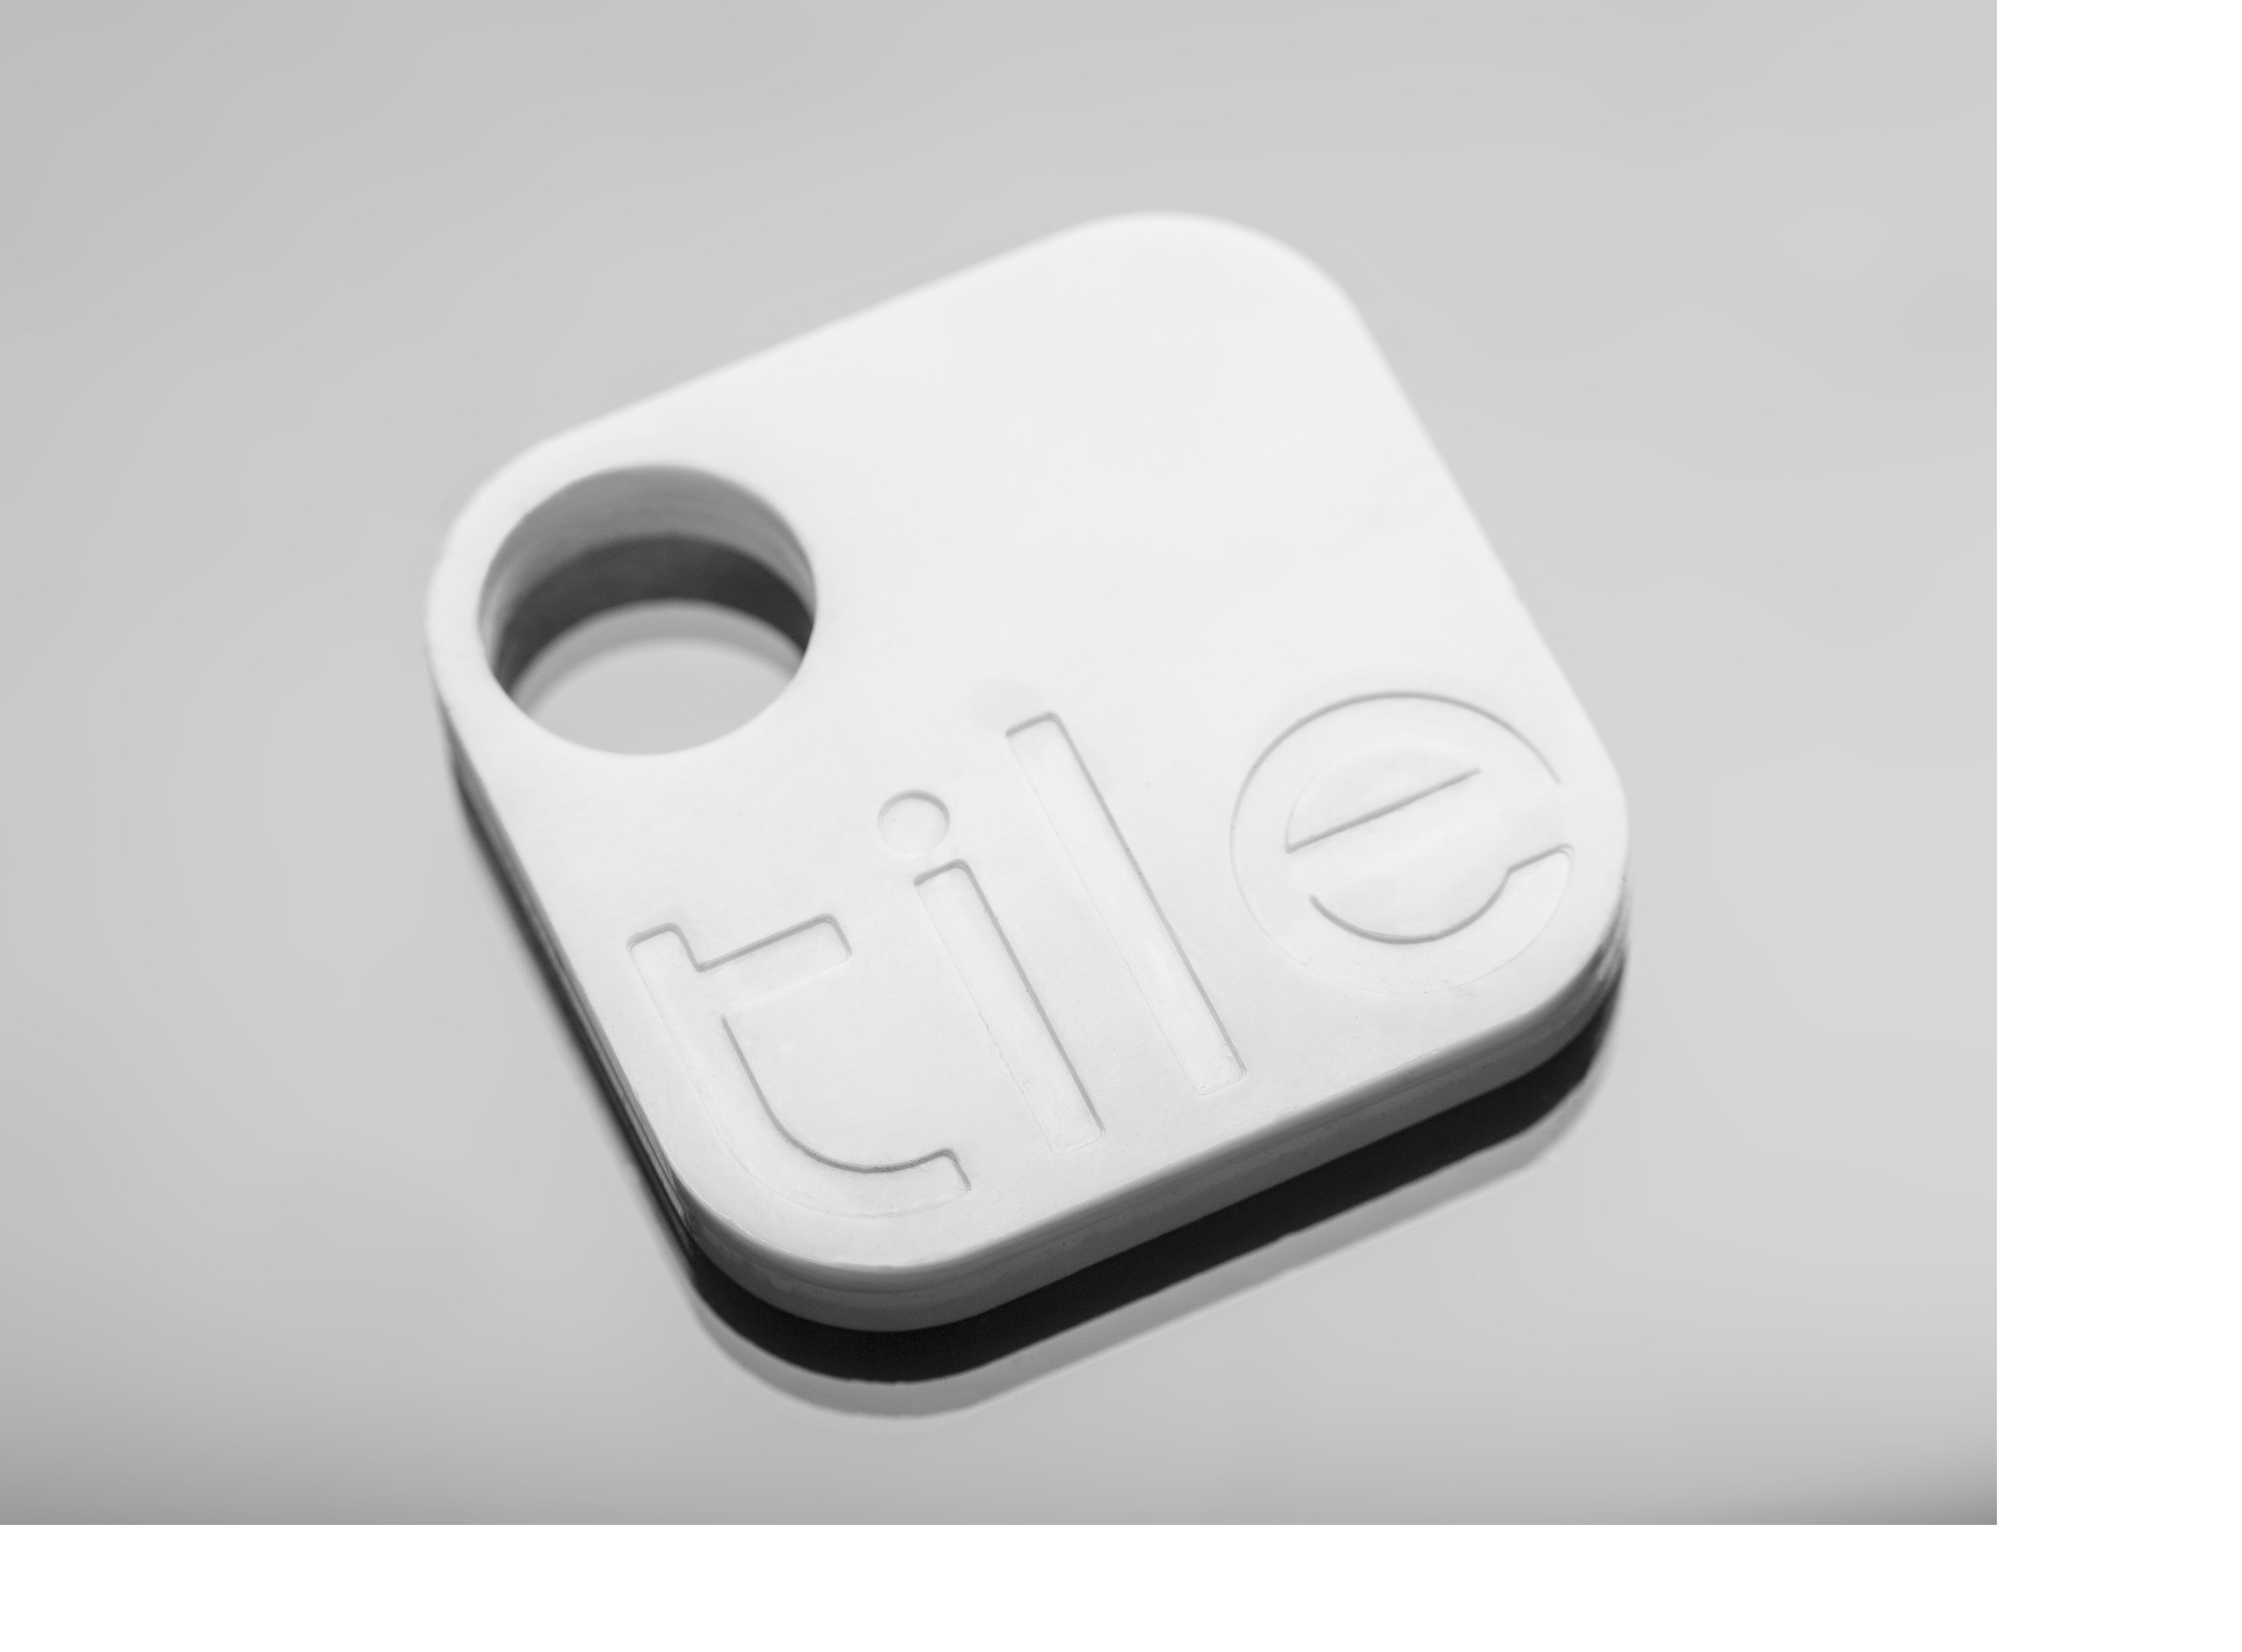 Tile Gadget gifts, Pcmag, Technology gadgets